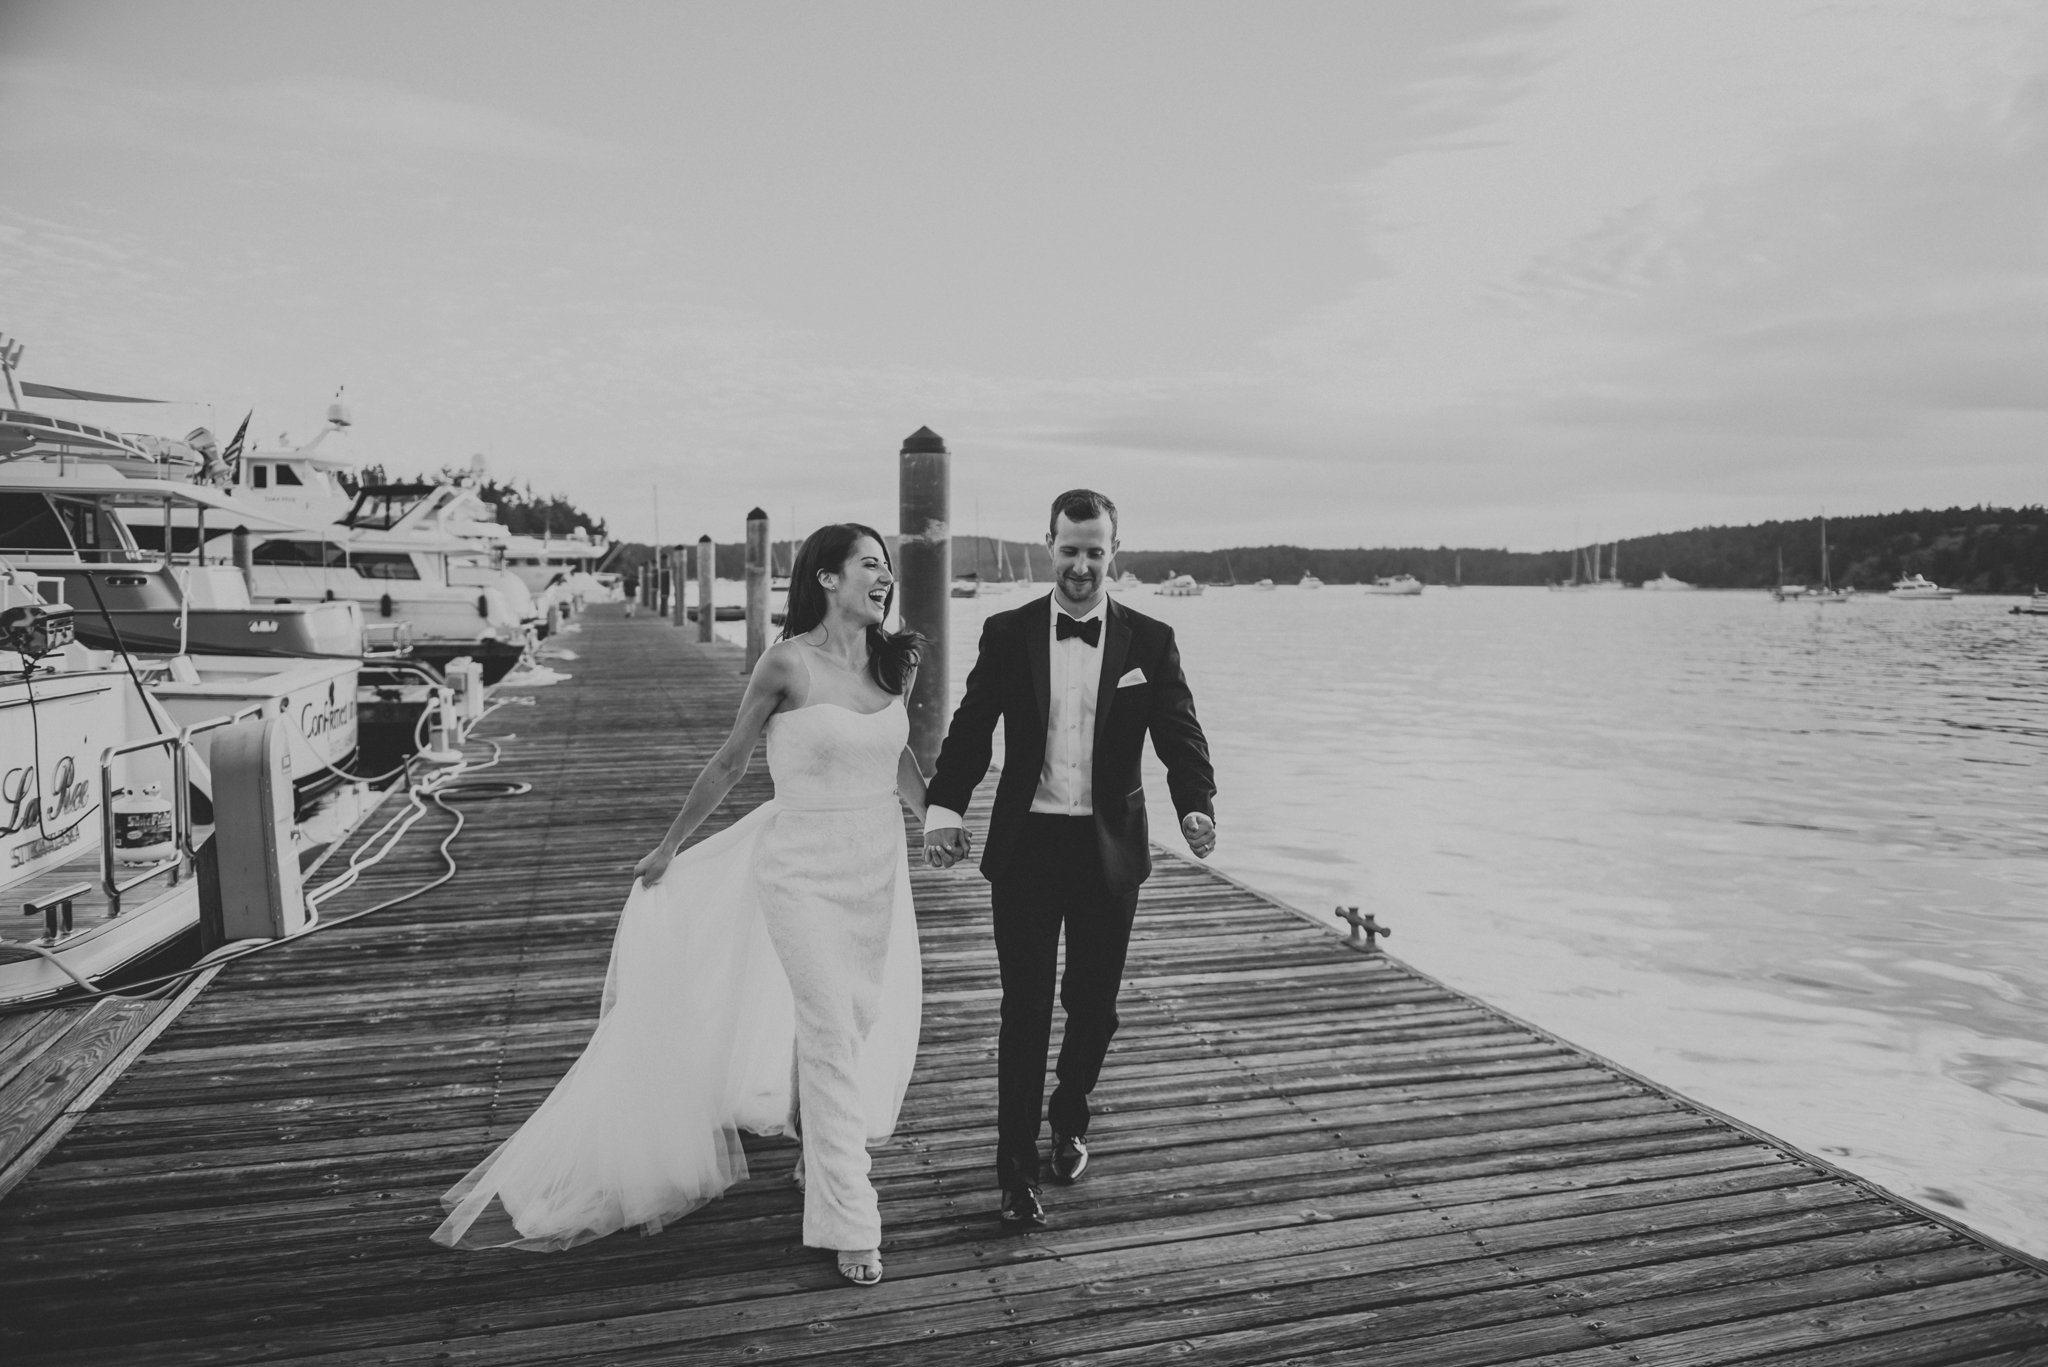 roche-harbor-resort-sand-juan-island-wedding-seattle-wedding-photograher-caitlyn-nikula-146.jpg